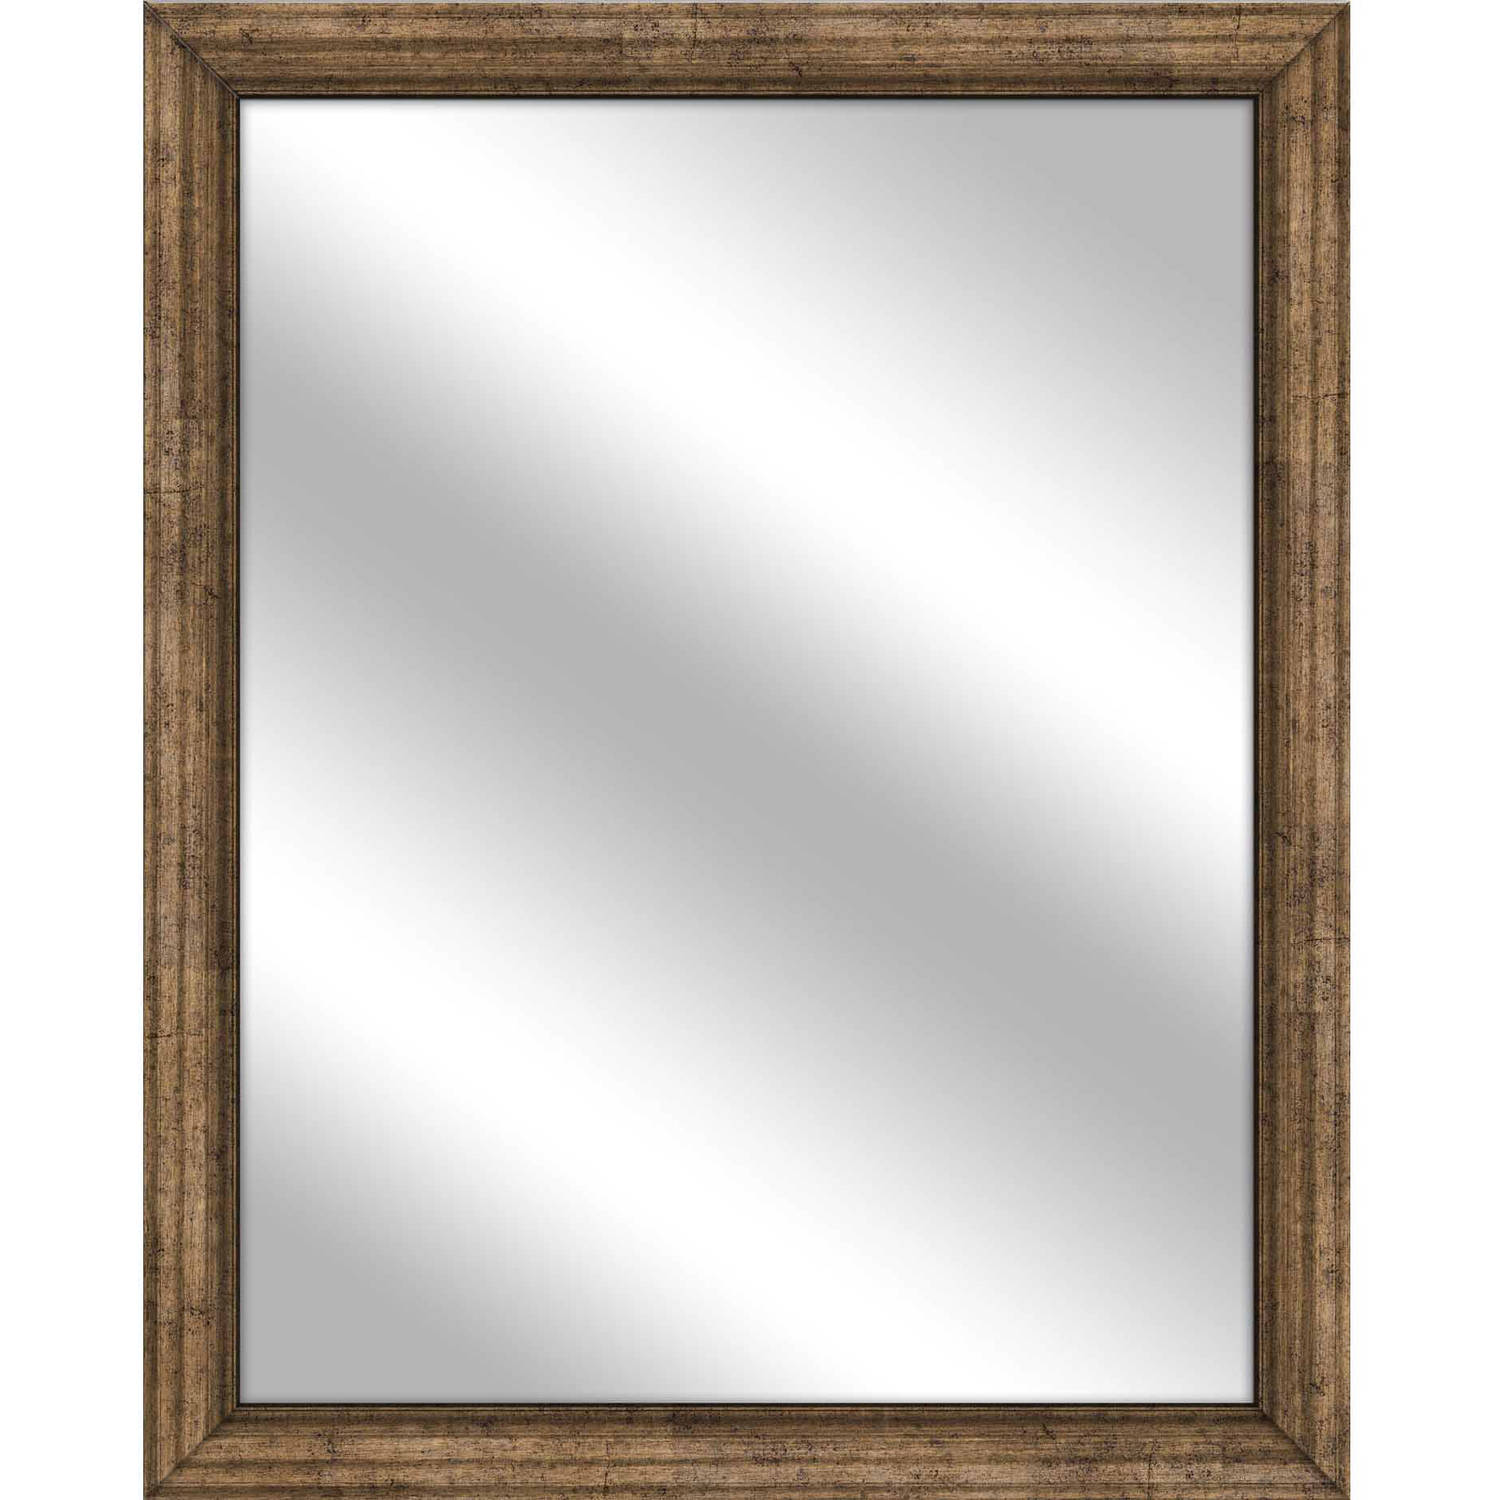 Vanity Mirror, Dark Champagne, 25x31 by PTM Images